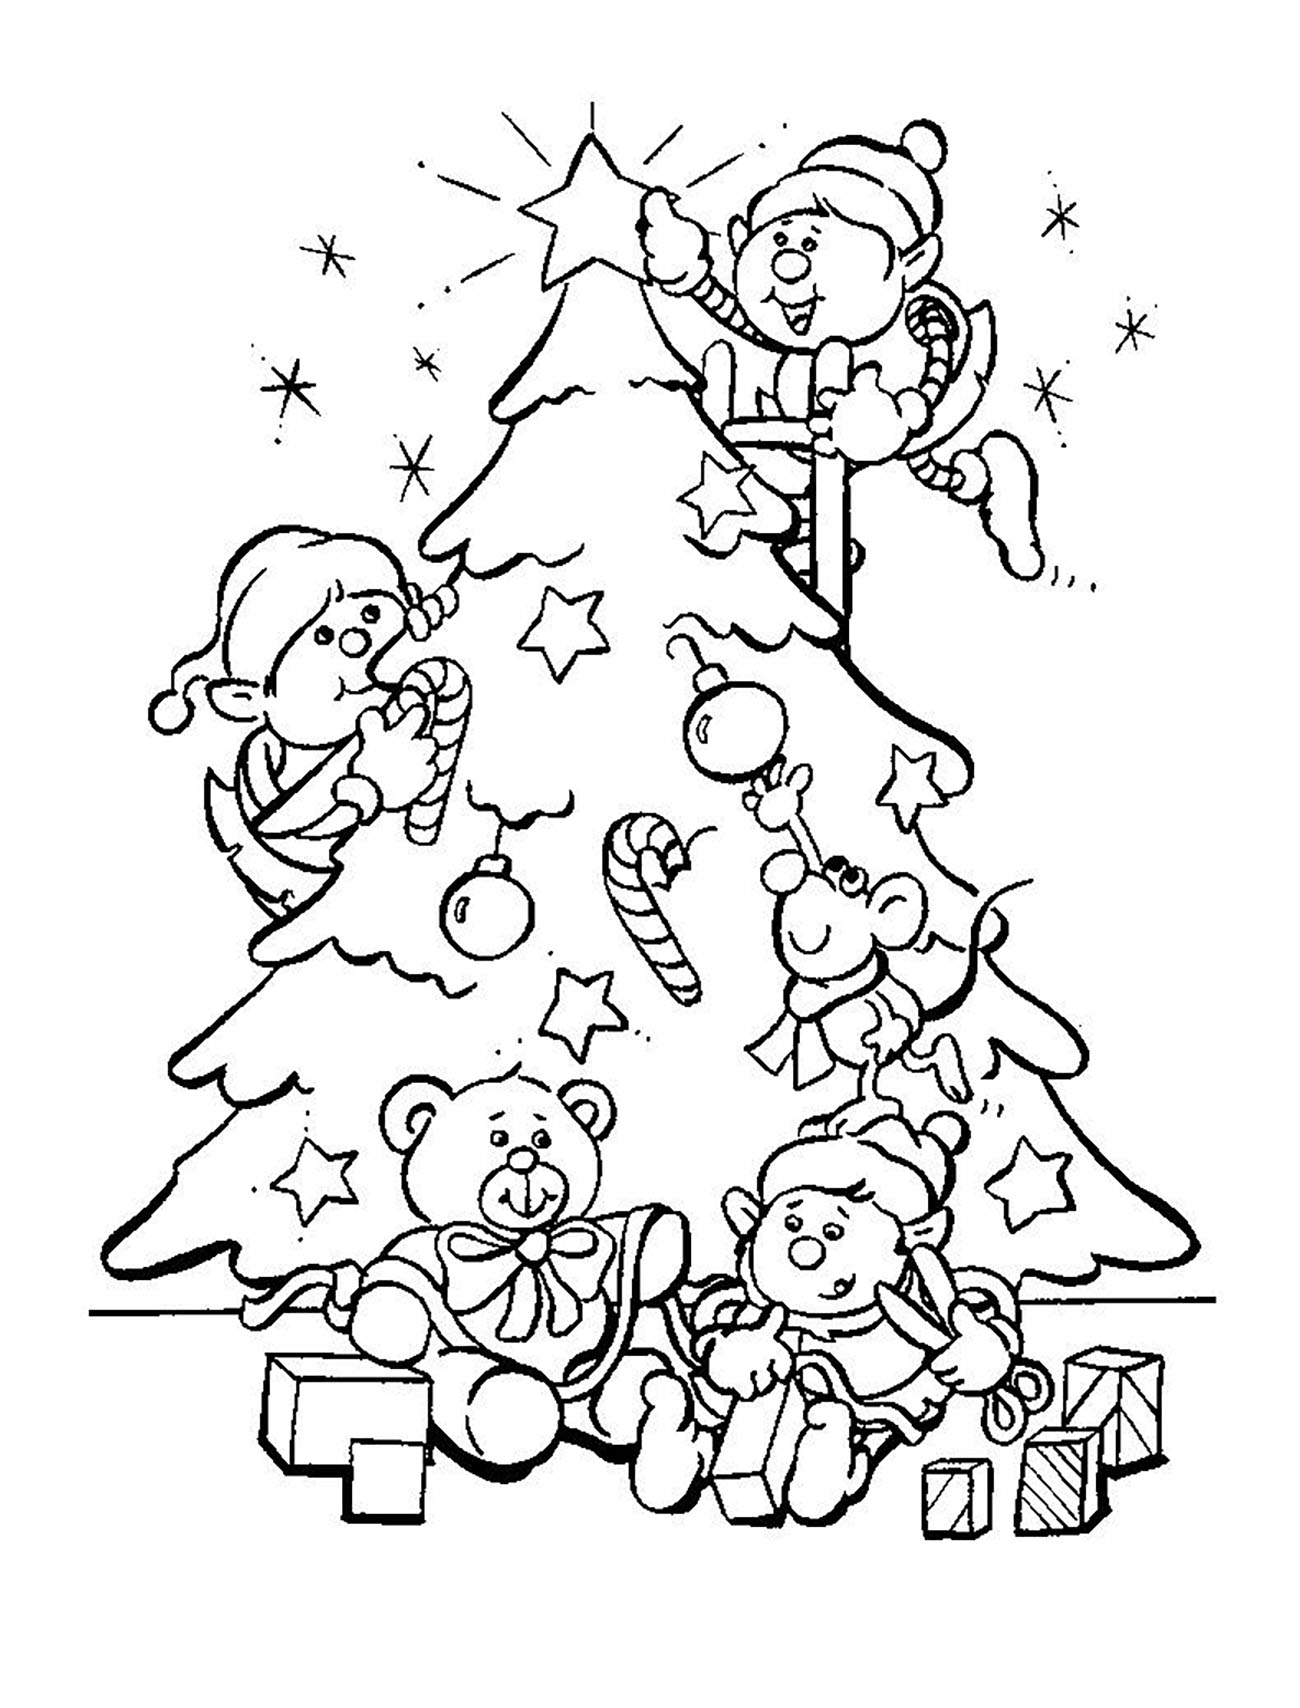 Christmas Tree With Elves Christmas Coloring Pages For Kids To